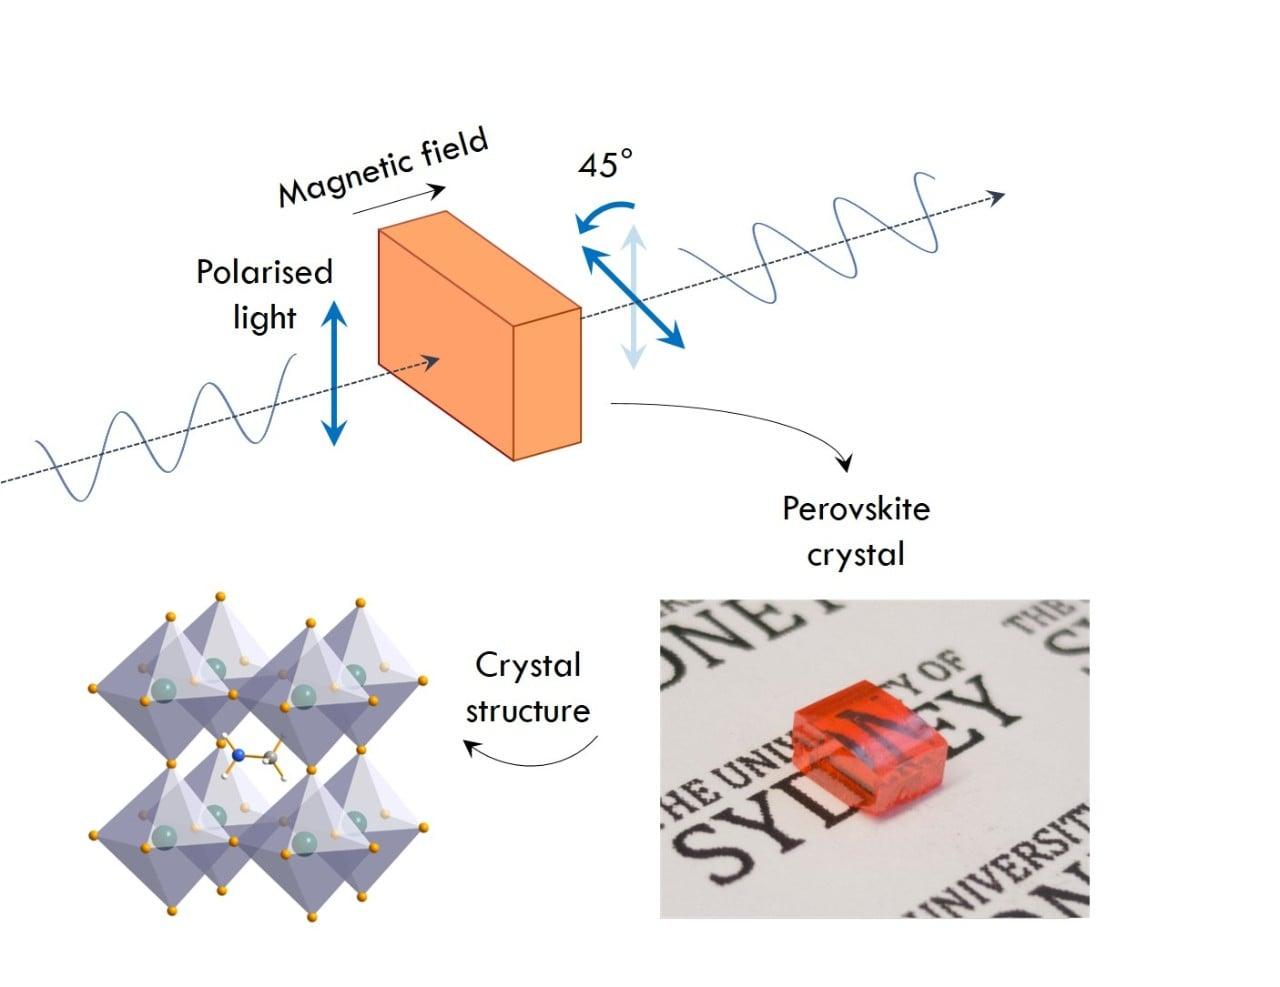 Image above: The polarisation of transmitted light is rotated by a crystal immersed in a magnetic field (top). The perovskite crystal (bottom right) rotates light very effectively, due to the atomic configuration of its crystal structure (bottom left).